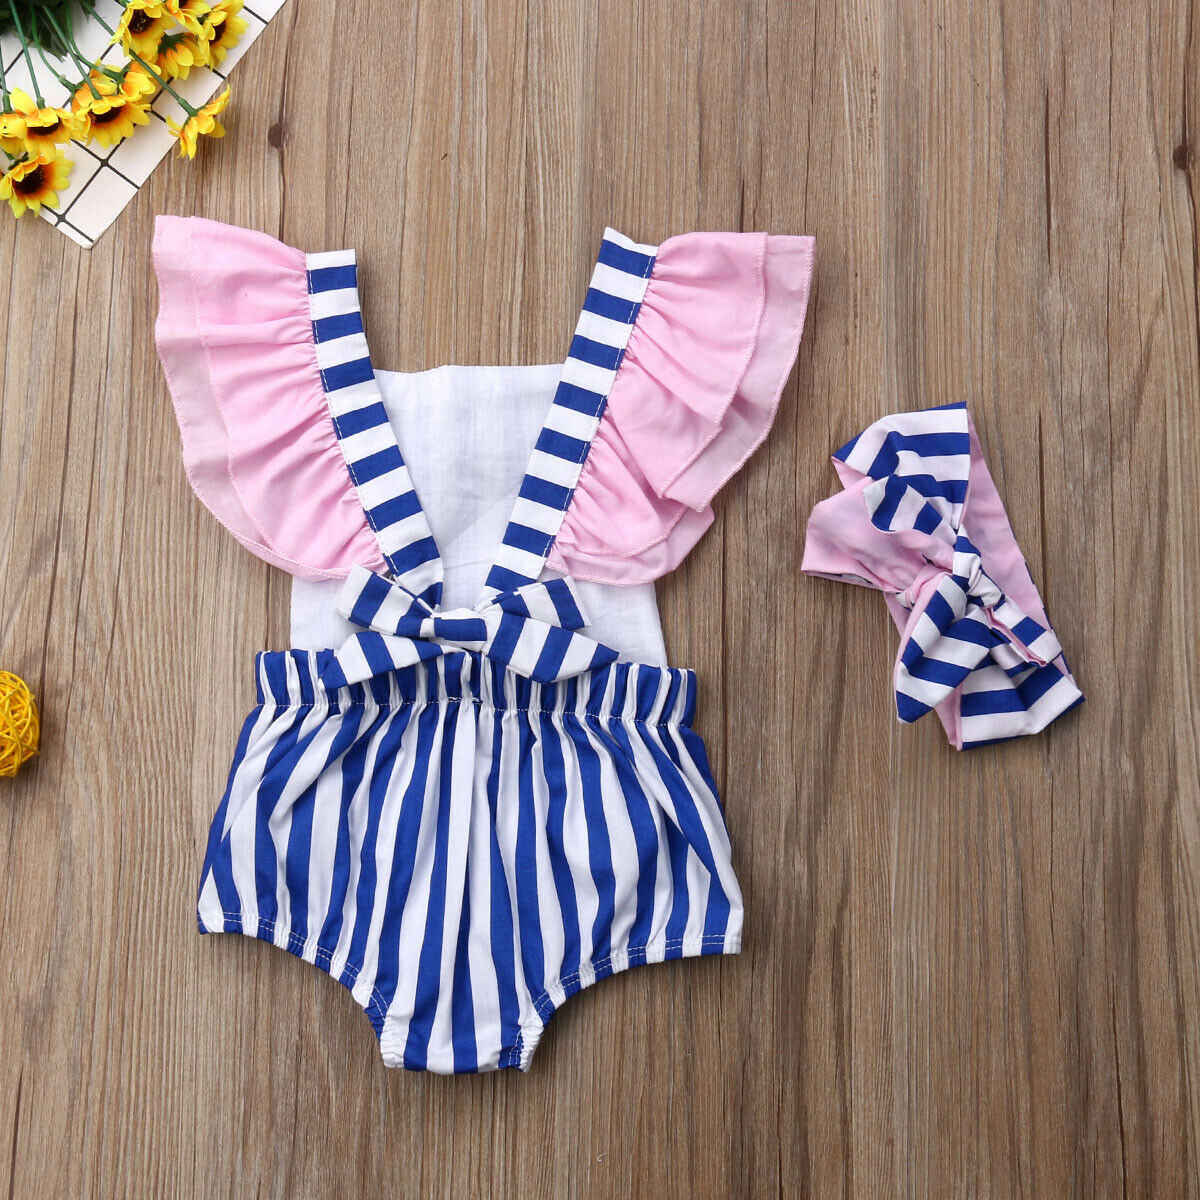 2019 Newborn Baby Girl Cotton Romper Jumpsuit Bodysuit Headband Clothes Outfit US